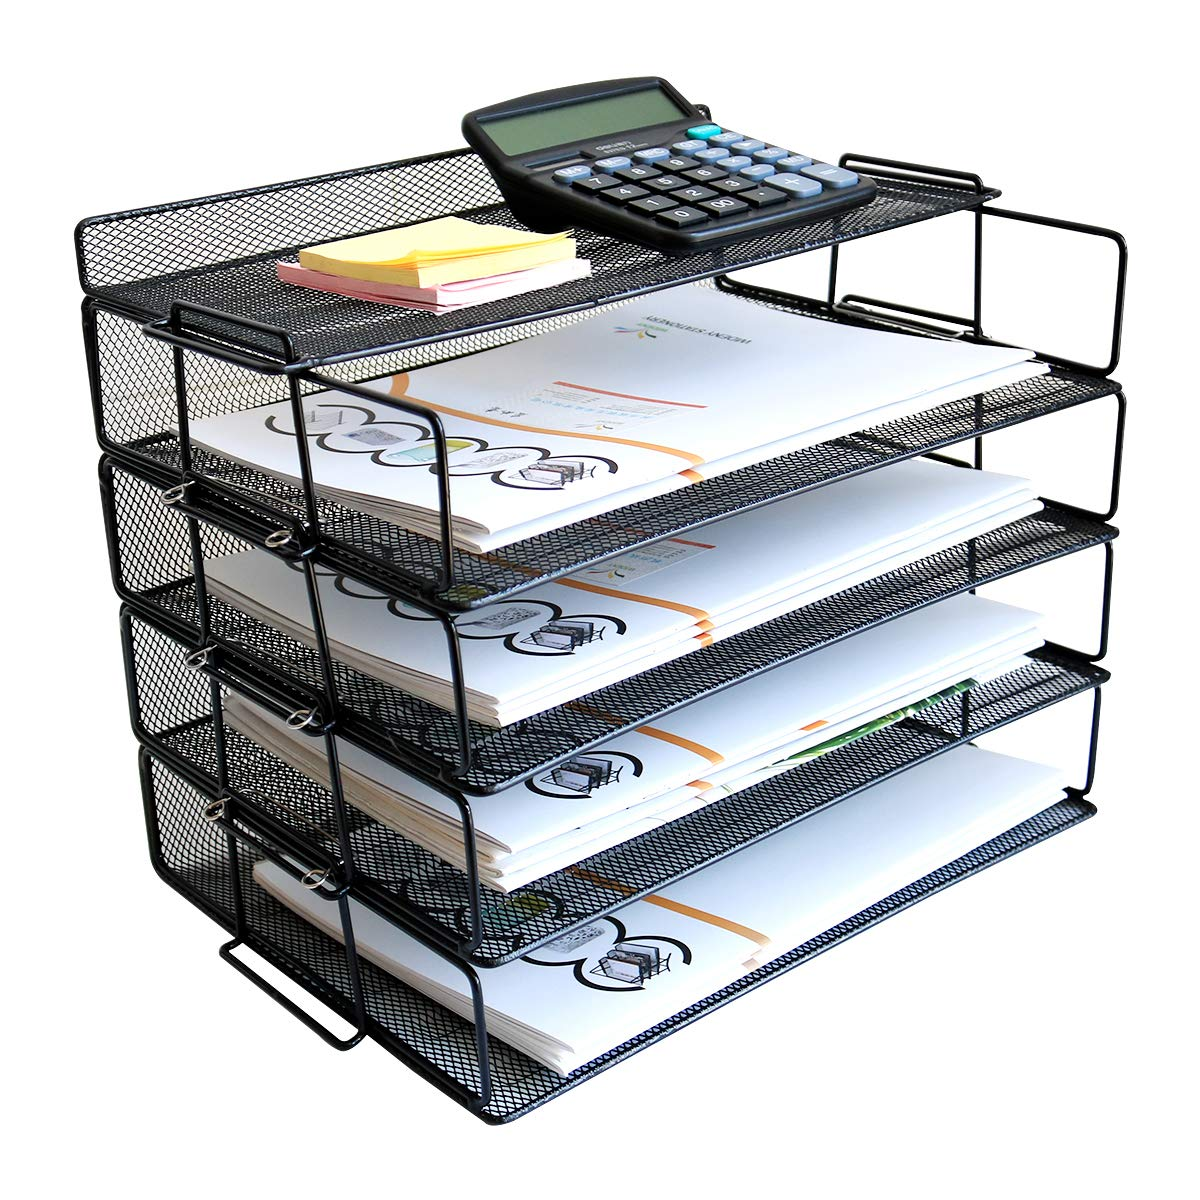 4 Tier Reinforce Stackable Paper Document Letter Tray Desk Organizer, New Design Metal Mesh File Holder Organizer for Home Office School, Folders Letters Paper Storage by WIDENY